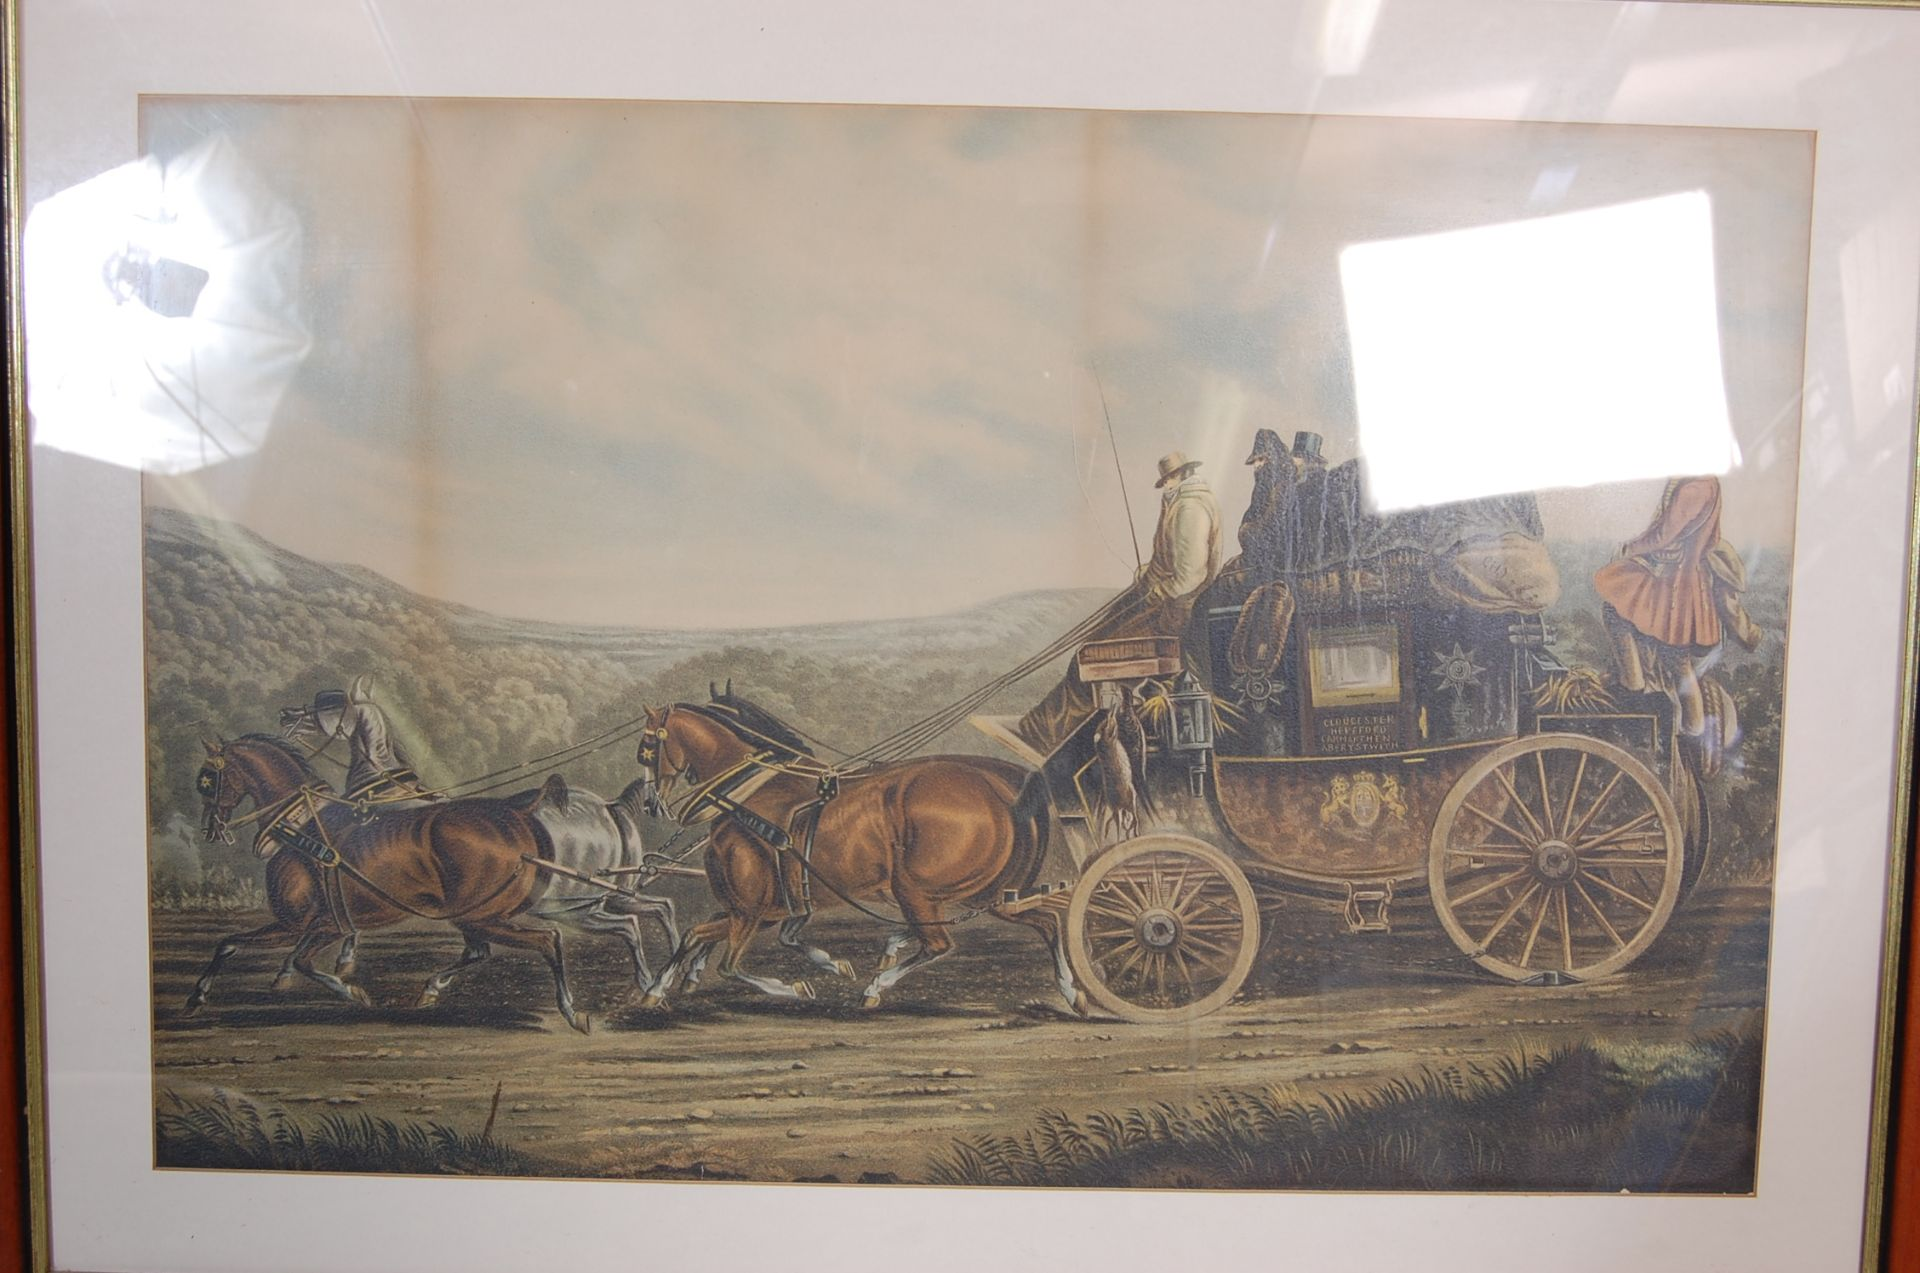 A GROUP OF SEVEN ROYAL MAIL LITHOGRAPH PRINTS DEPICTING 19TH CENTURY ROAYL MAIL COACHES - Image 7 of 13